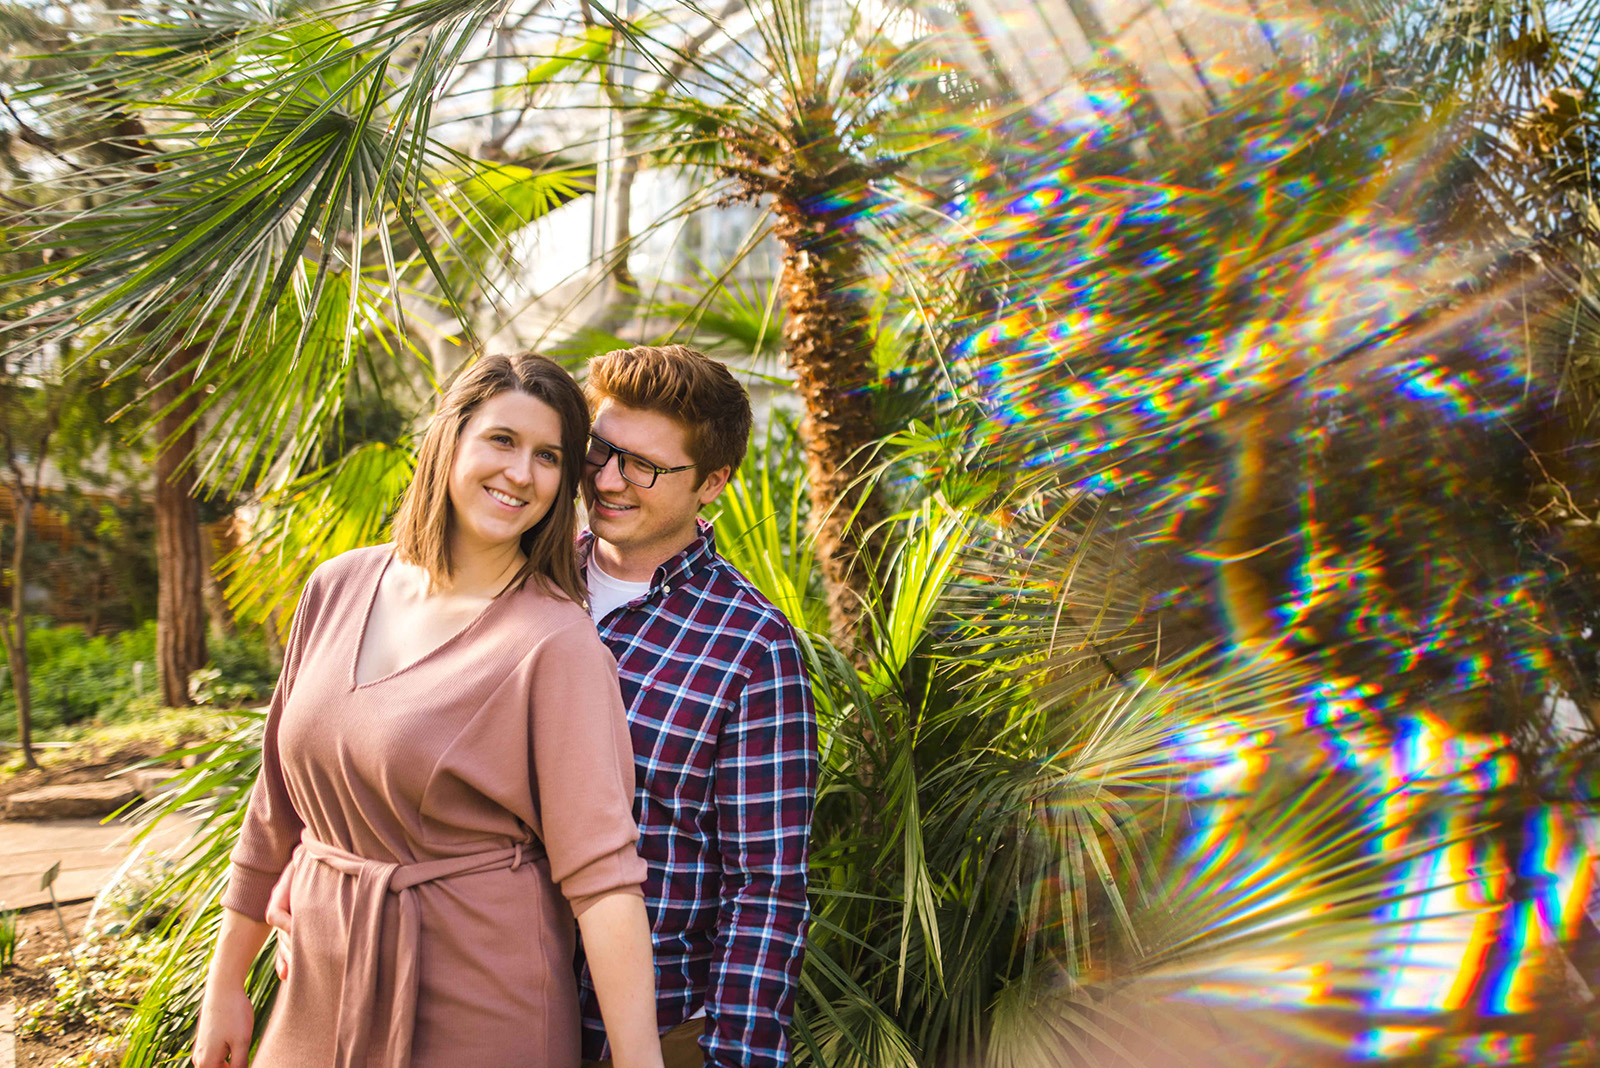 Emerson & Elicia's Royal Botanical Gardens Mediterranean Room Engagement Session Indoors Summer Greenhouse Warm Aidan Hennebry Hush Hush Photography Film Wedding.jpg